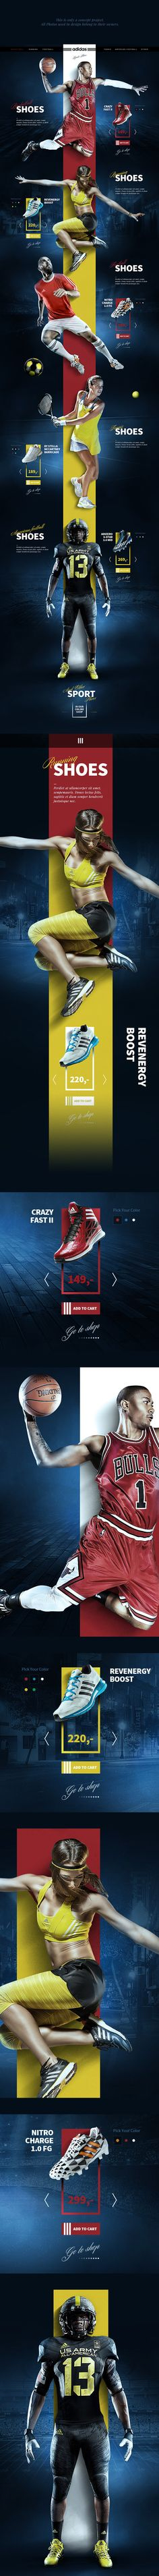 Sport Shoes Concept on Web Design Served